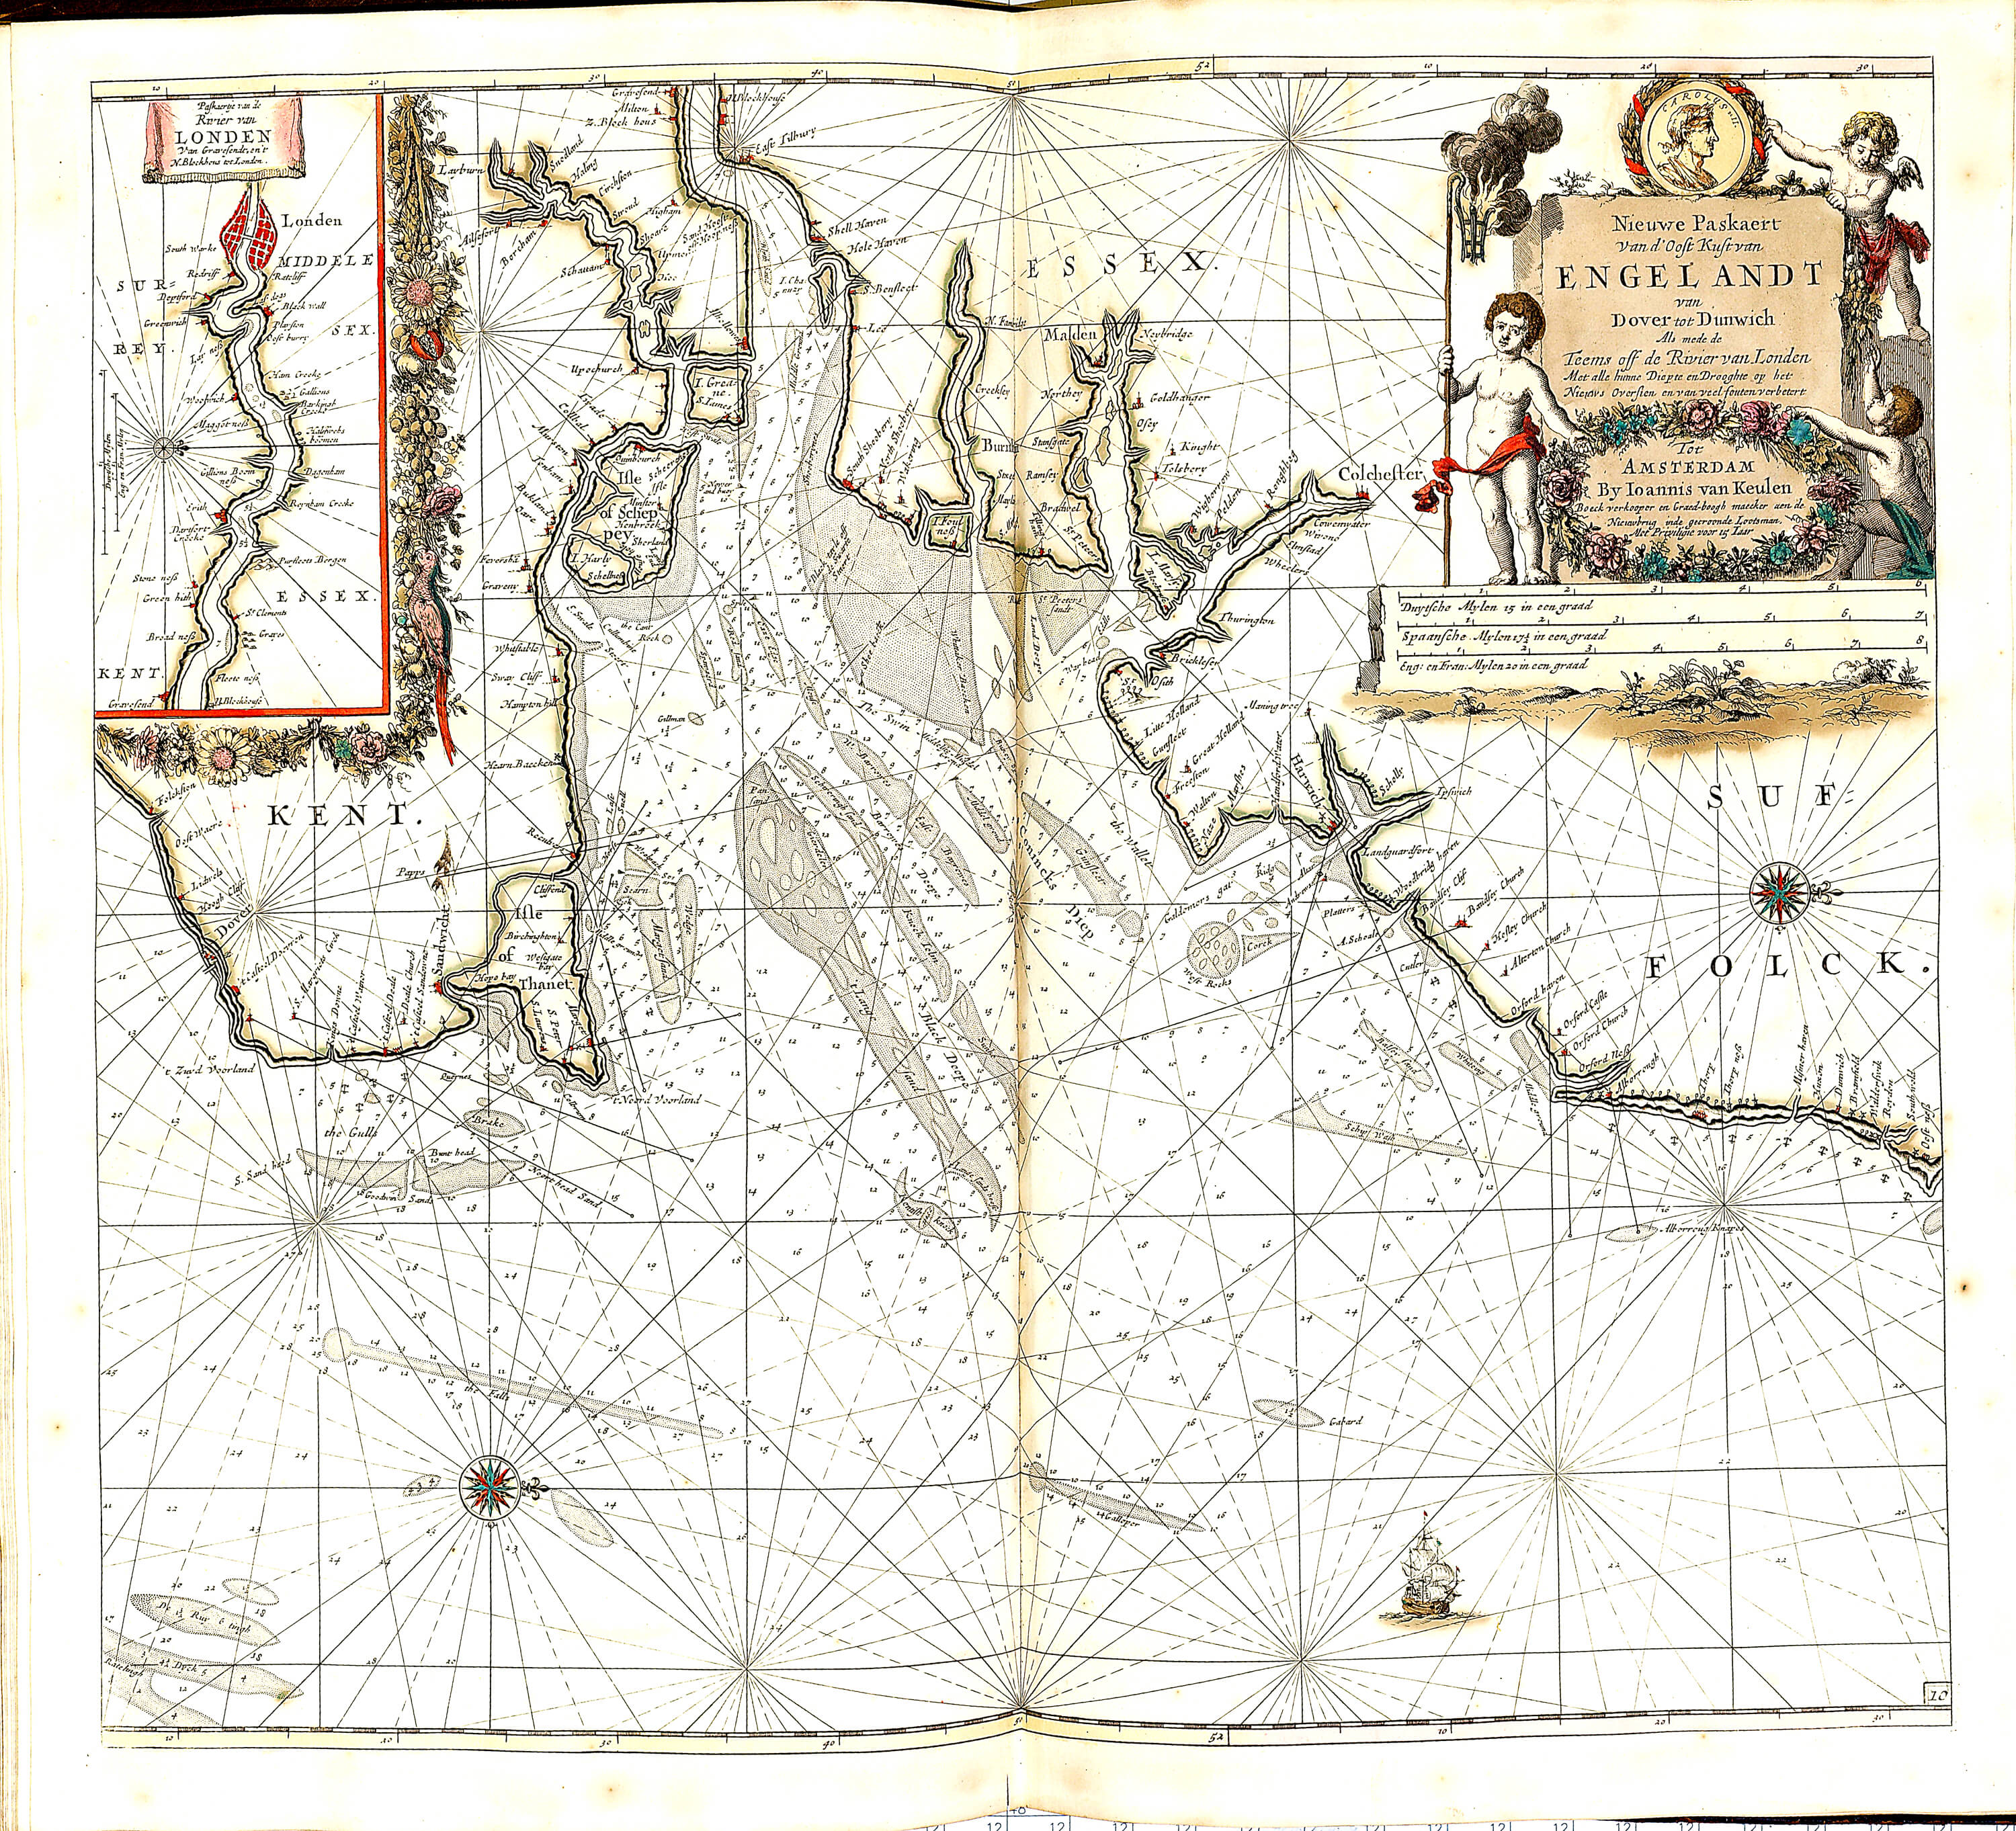 World atlas of charts by johannes van keulan z 1 17 1696 part 2 z 1 17 050 england gumiabroncs Choice Image